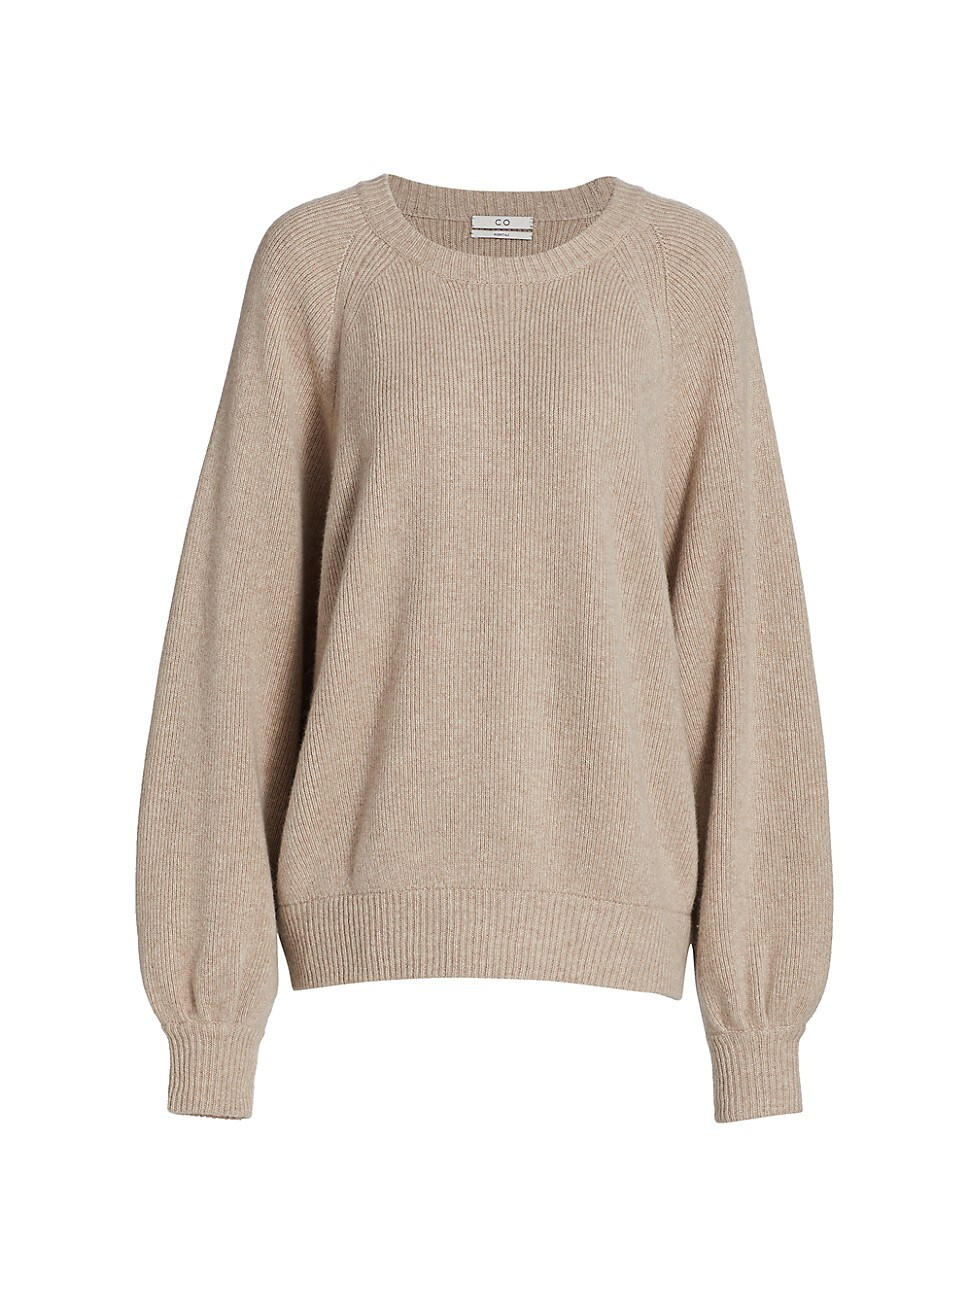 Co WOMEN'S OVERSIZED CASHMERE SWEATER